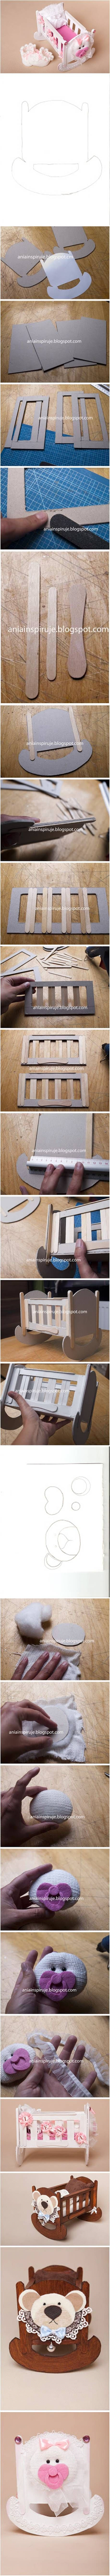 "<input+type=""hidden""+value=""""+data-frizzlyPostContainer=""""+data-frizzlyPostUrl=""http://www.usefuldiy.com/diy-cardboard-baby-cradle/""+data-frizzlyPostTitle=""DIY+Cardboard+Baby+Cradle""+data-frizzlyHoverContainer=""""><p>>>>+Craft+Tutorials+More+Free+Instructions+Free+Tutorials+More+Craft+Tutorials</p>"